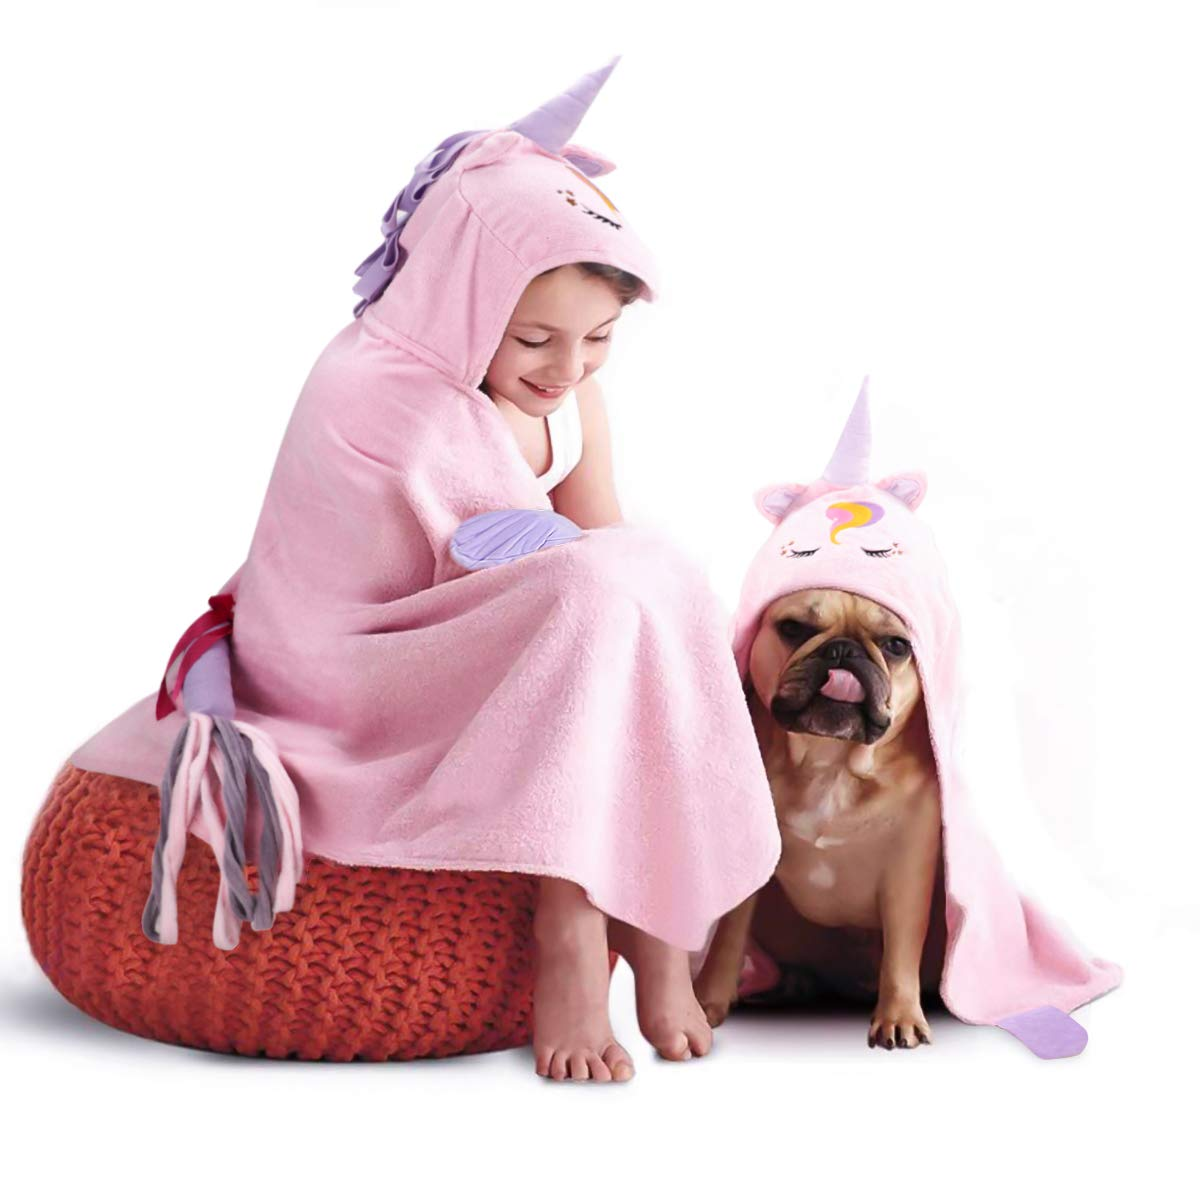 FamFun Baby Unicorn Hooded Beach Towel - Toddler/Kids Bath Towels with Hood - Soft, Absorbent & Comforting for Girls, Large 47'' x 27'' | Great Present for Children Age 2-10 by FamFun Baby